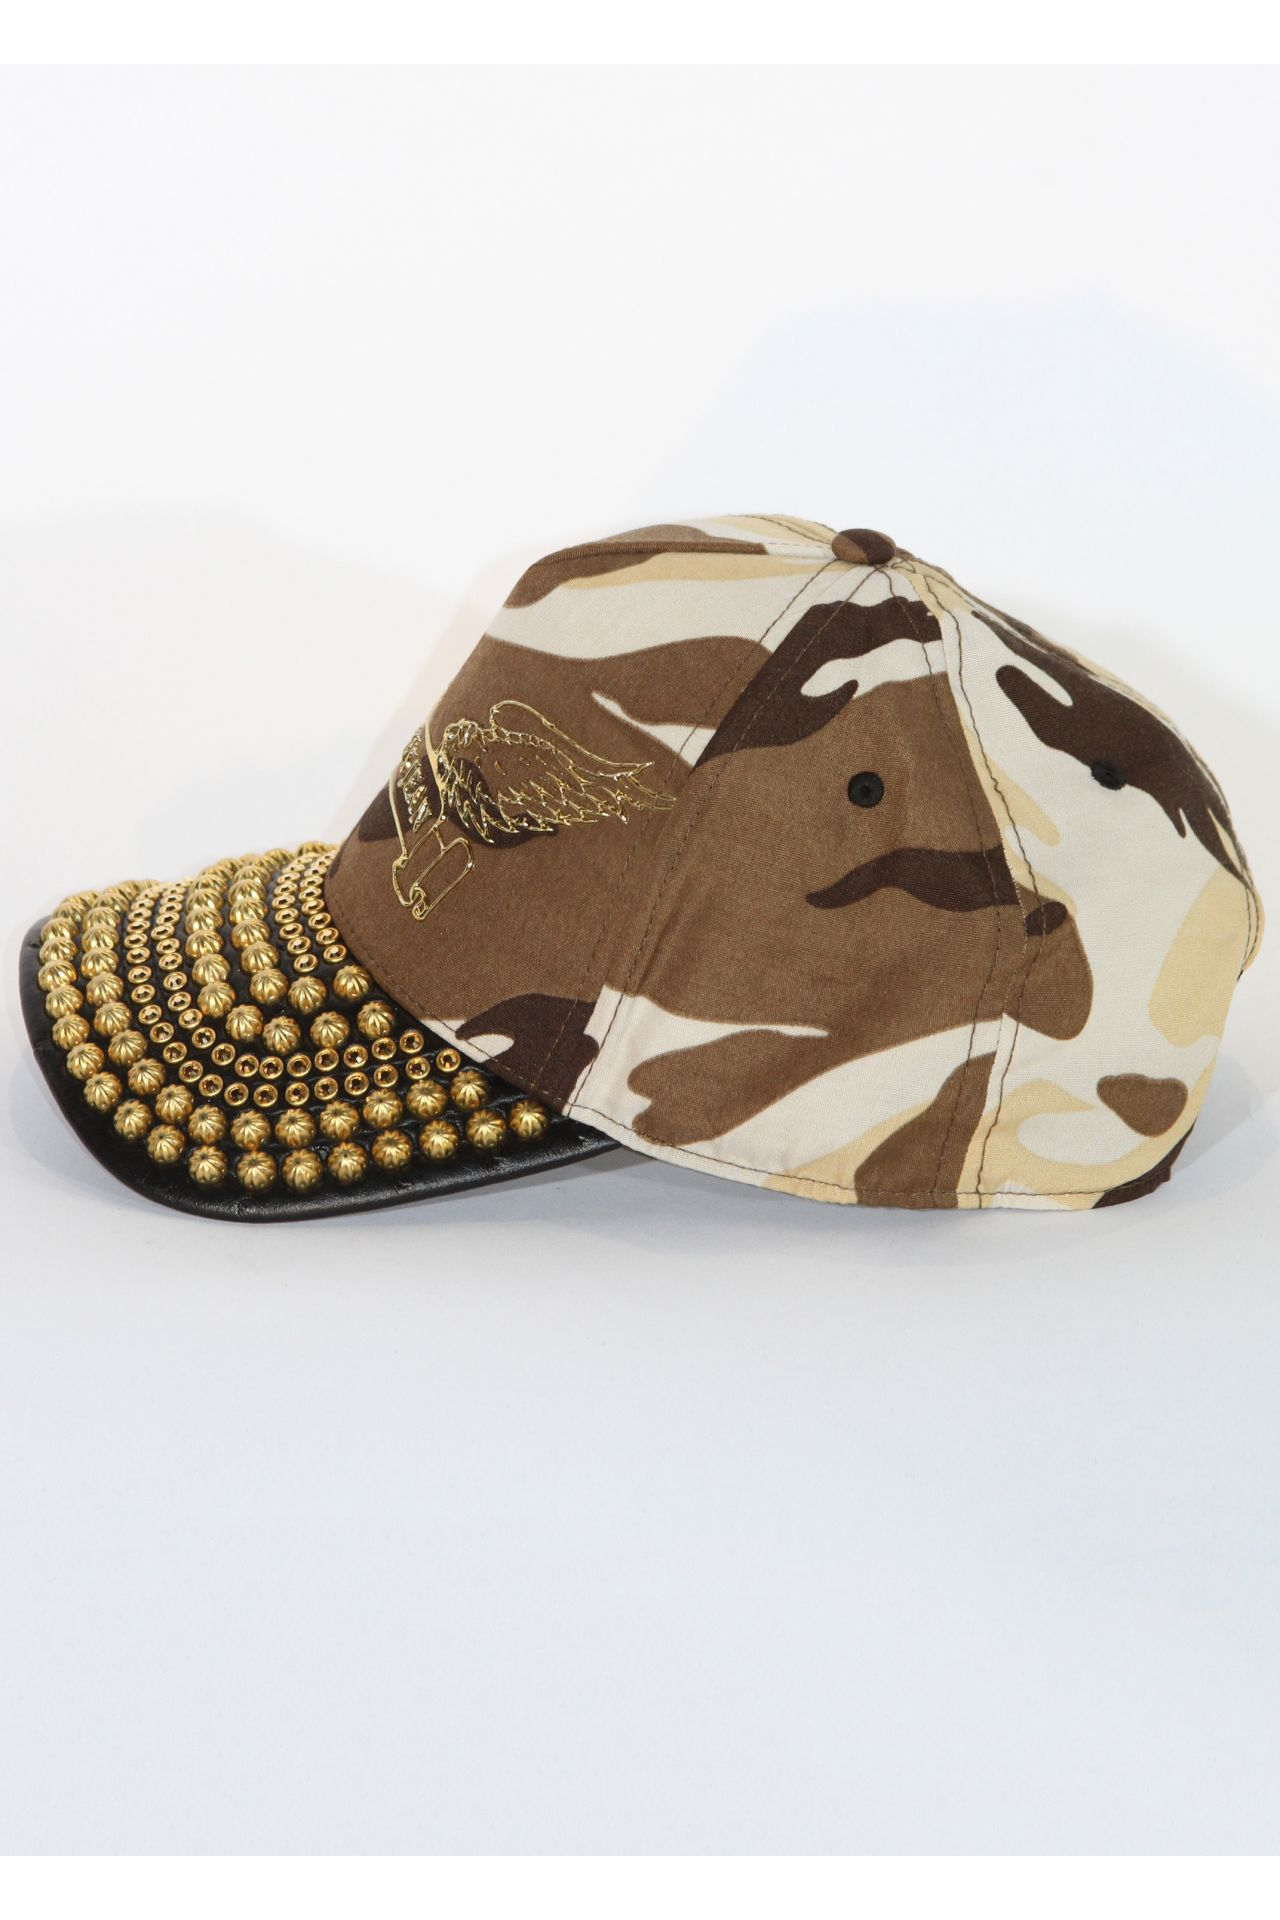 CAP IN KHAKI CAMOUFLAGE WITH GOLD SW AND PARACHUTES